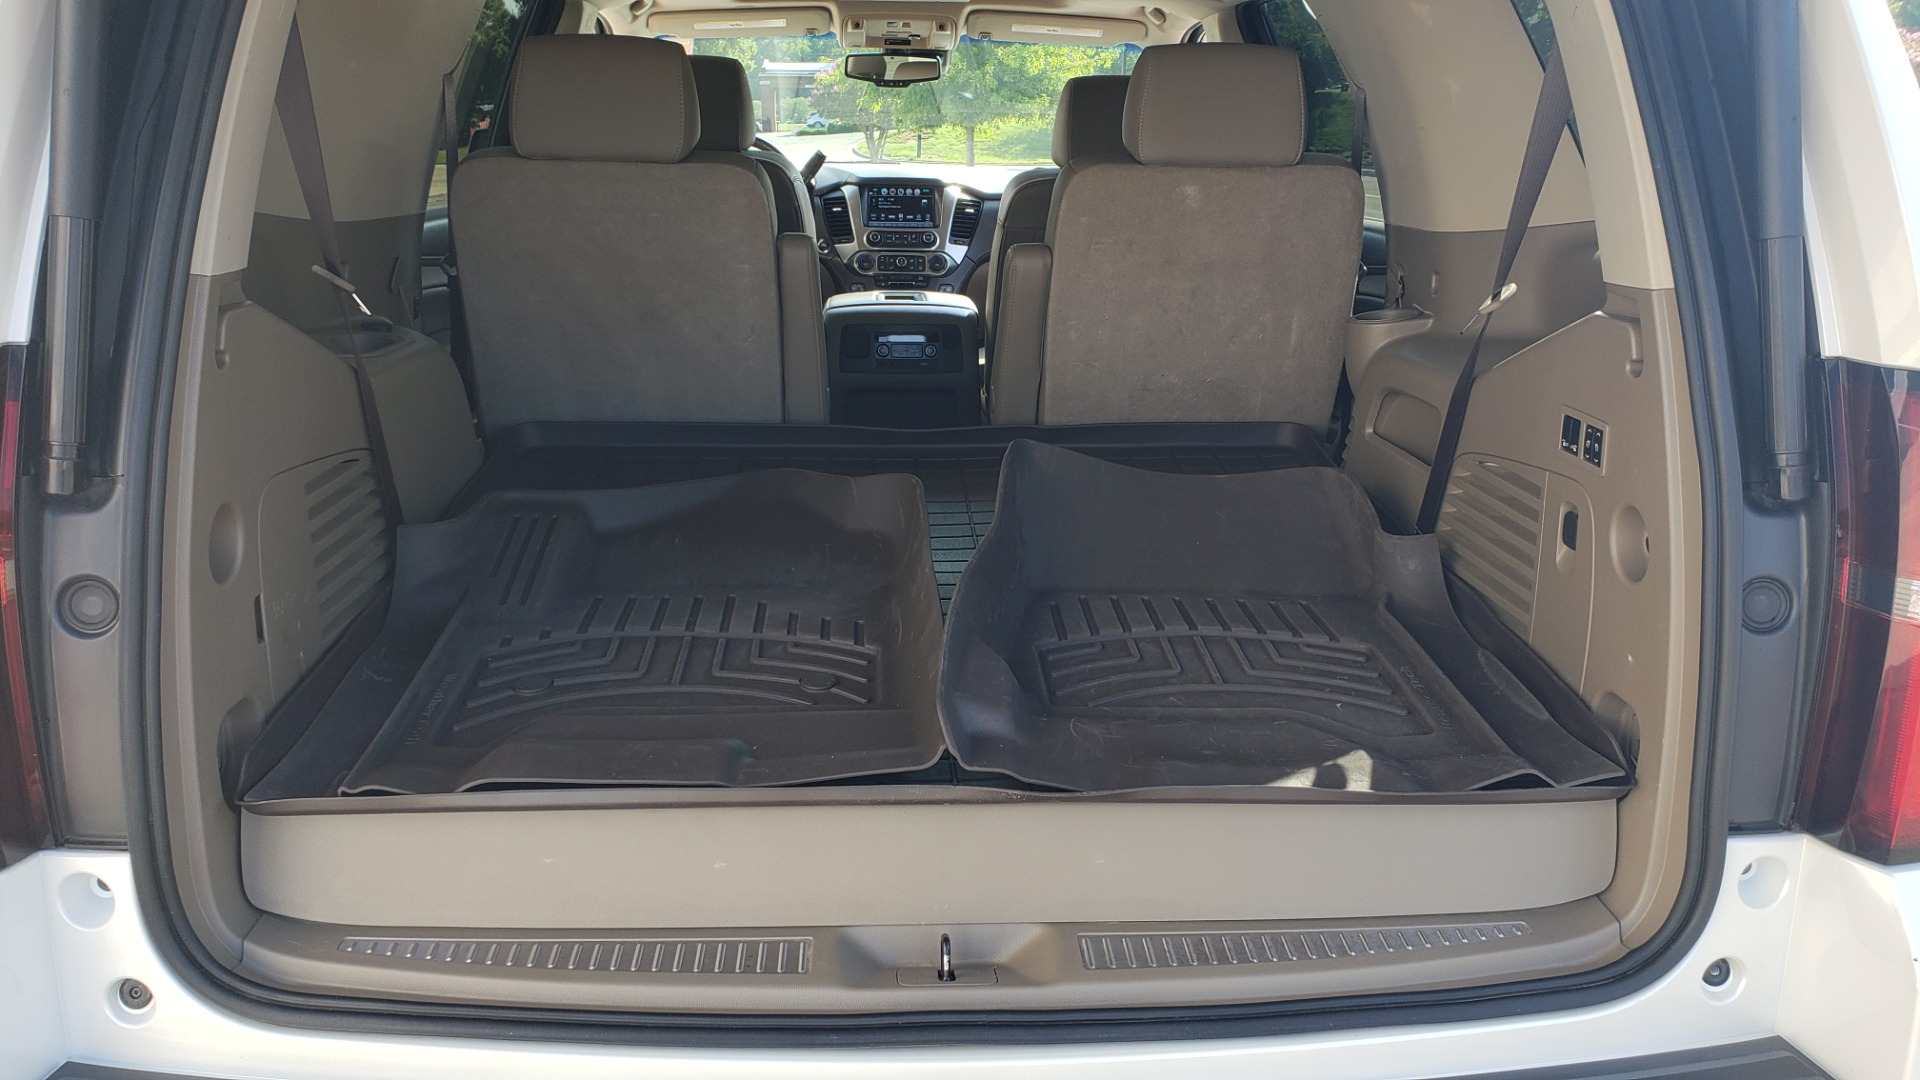 Used 2018 Chevrolet TAHOE PREMIER 4X4 / NAV / BOSE / SUNROOF / ENT SYS / 3-ROW / REARVIEW for sale $55,995 at Formula Imports in Charlotte NC 28227 16